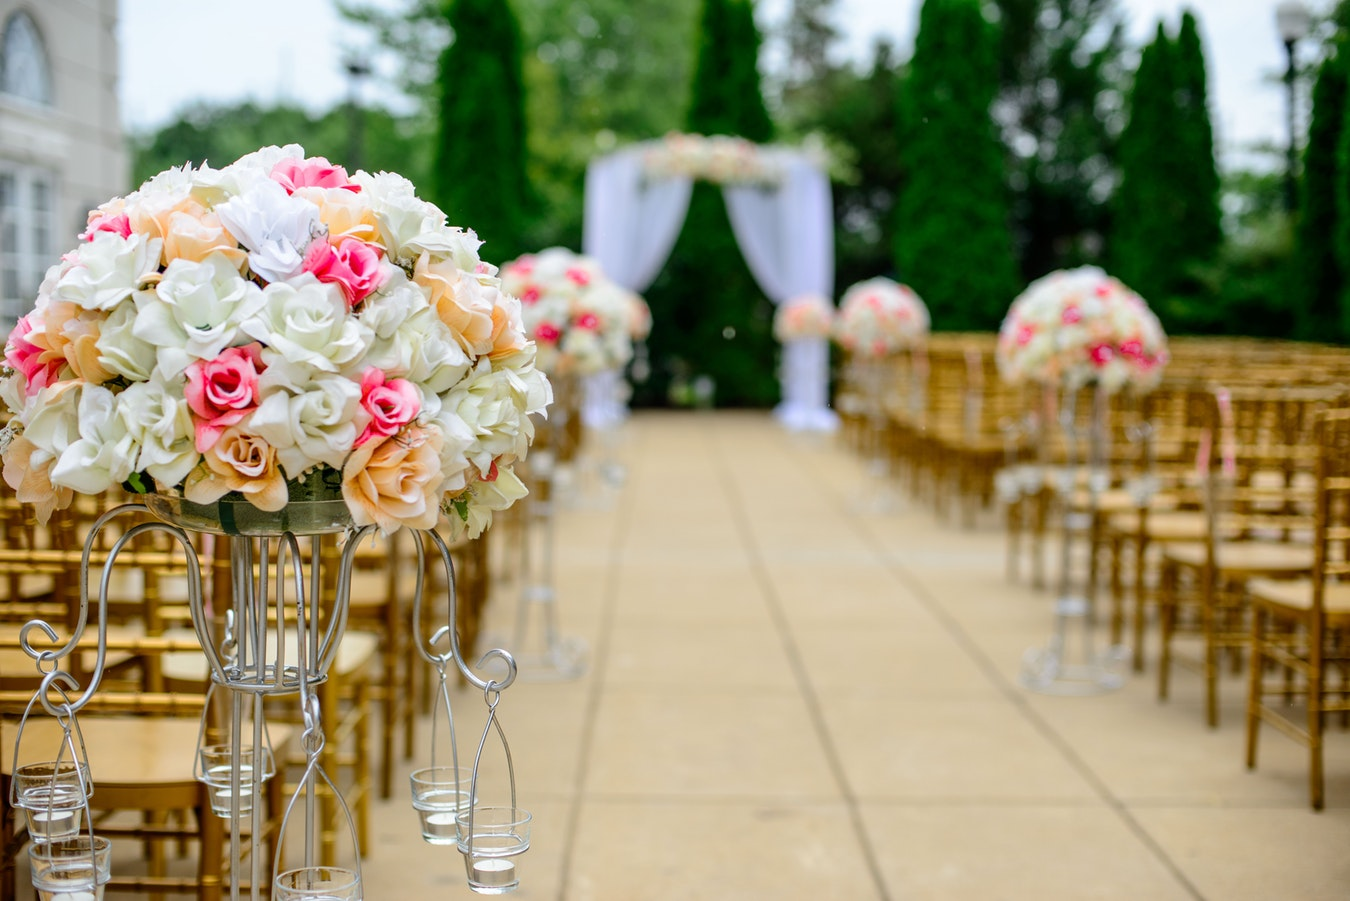 wedding aisle with chairs and flowers.